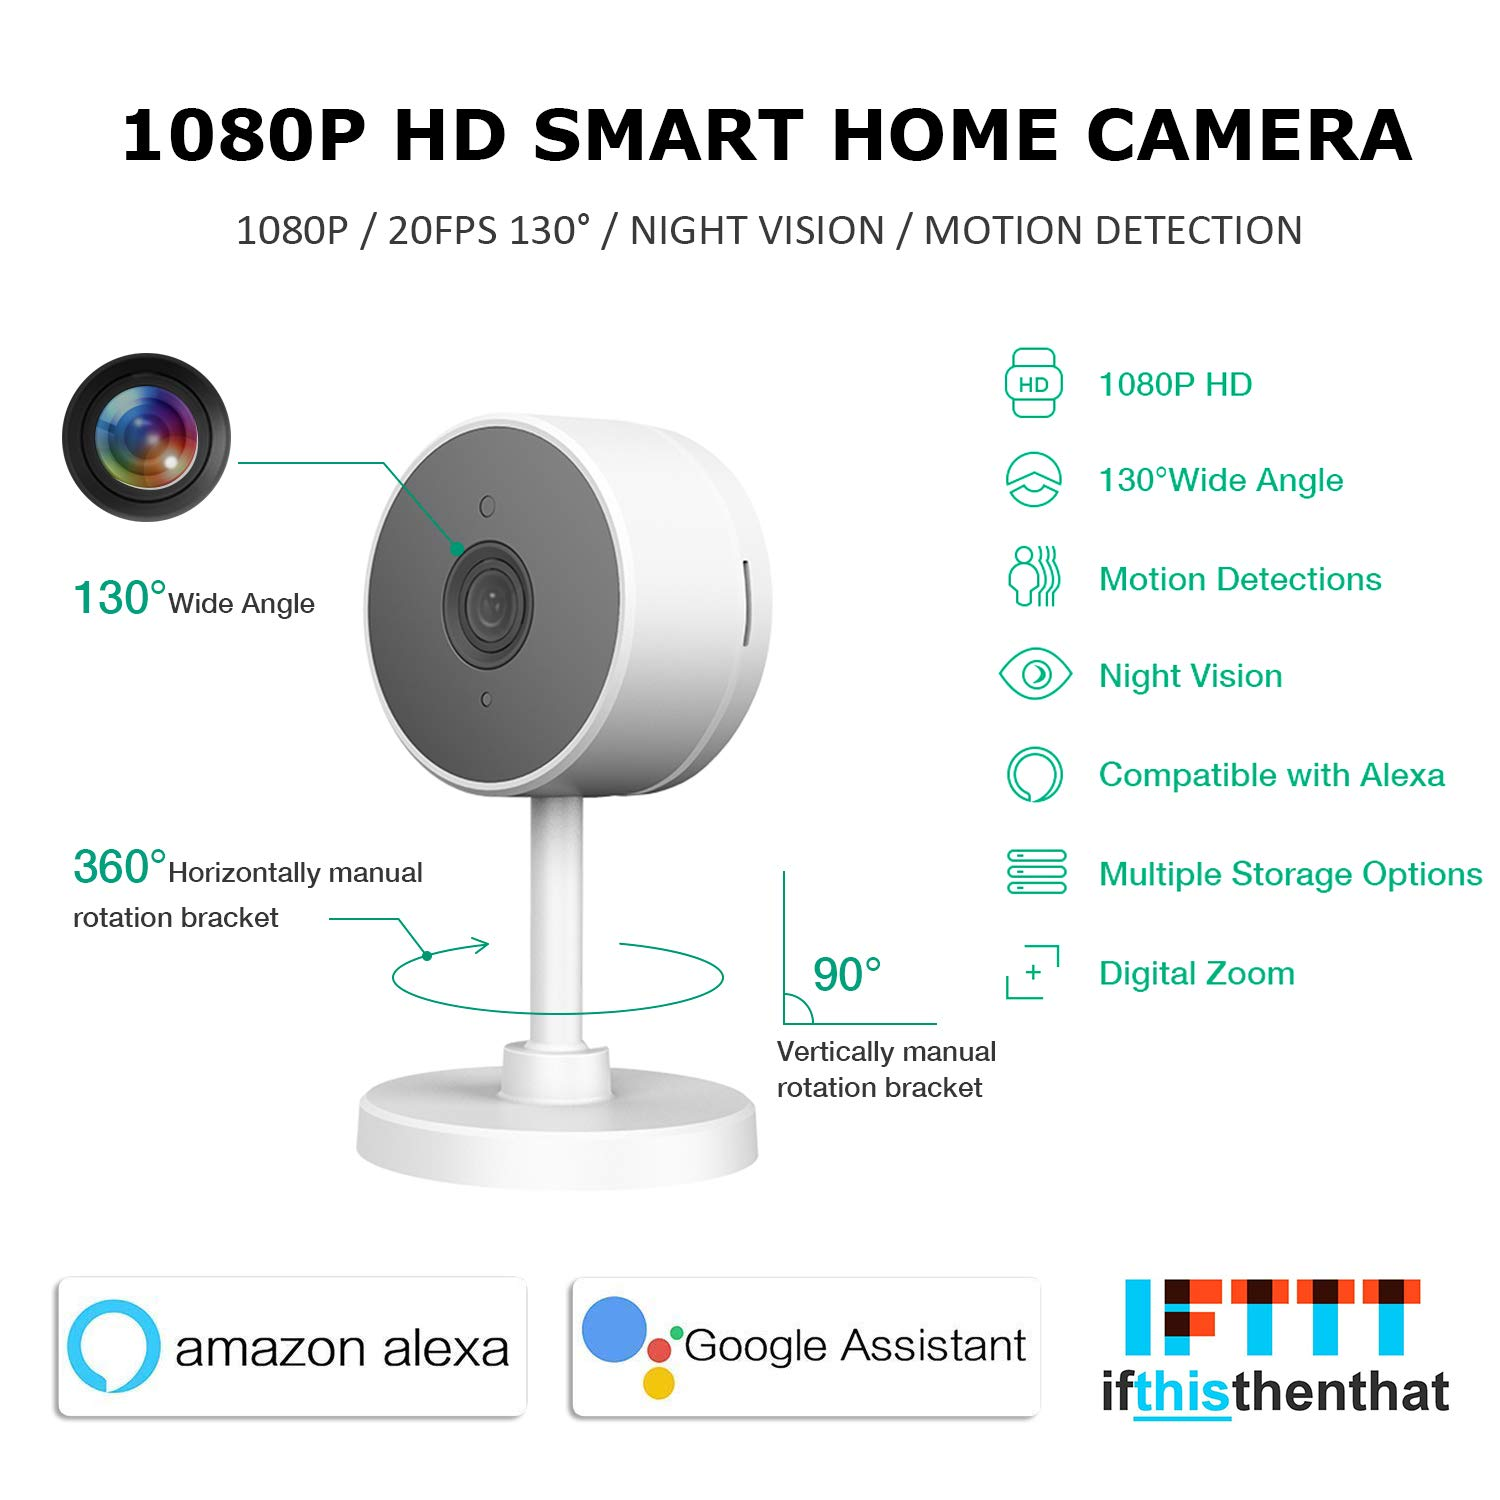 LARKKEY WiFi Home Security Surveillance Camera 1080P, Smart Baby Monitor Compatible with Alexa and Google Home, Motion Detection & Tracker, Night Vision by LARKKEY (Image #2)